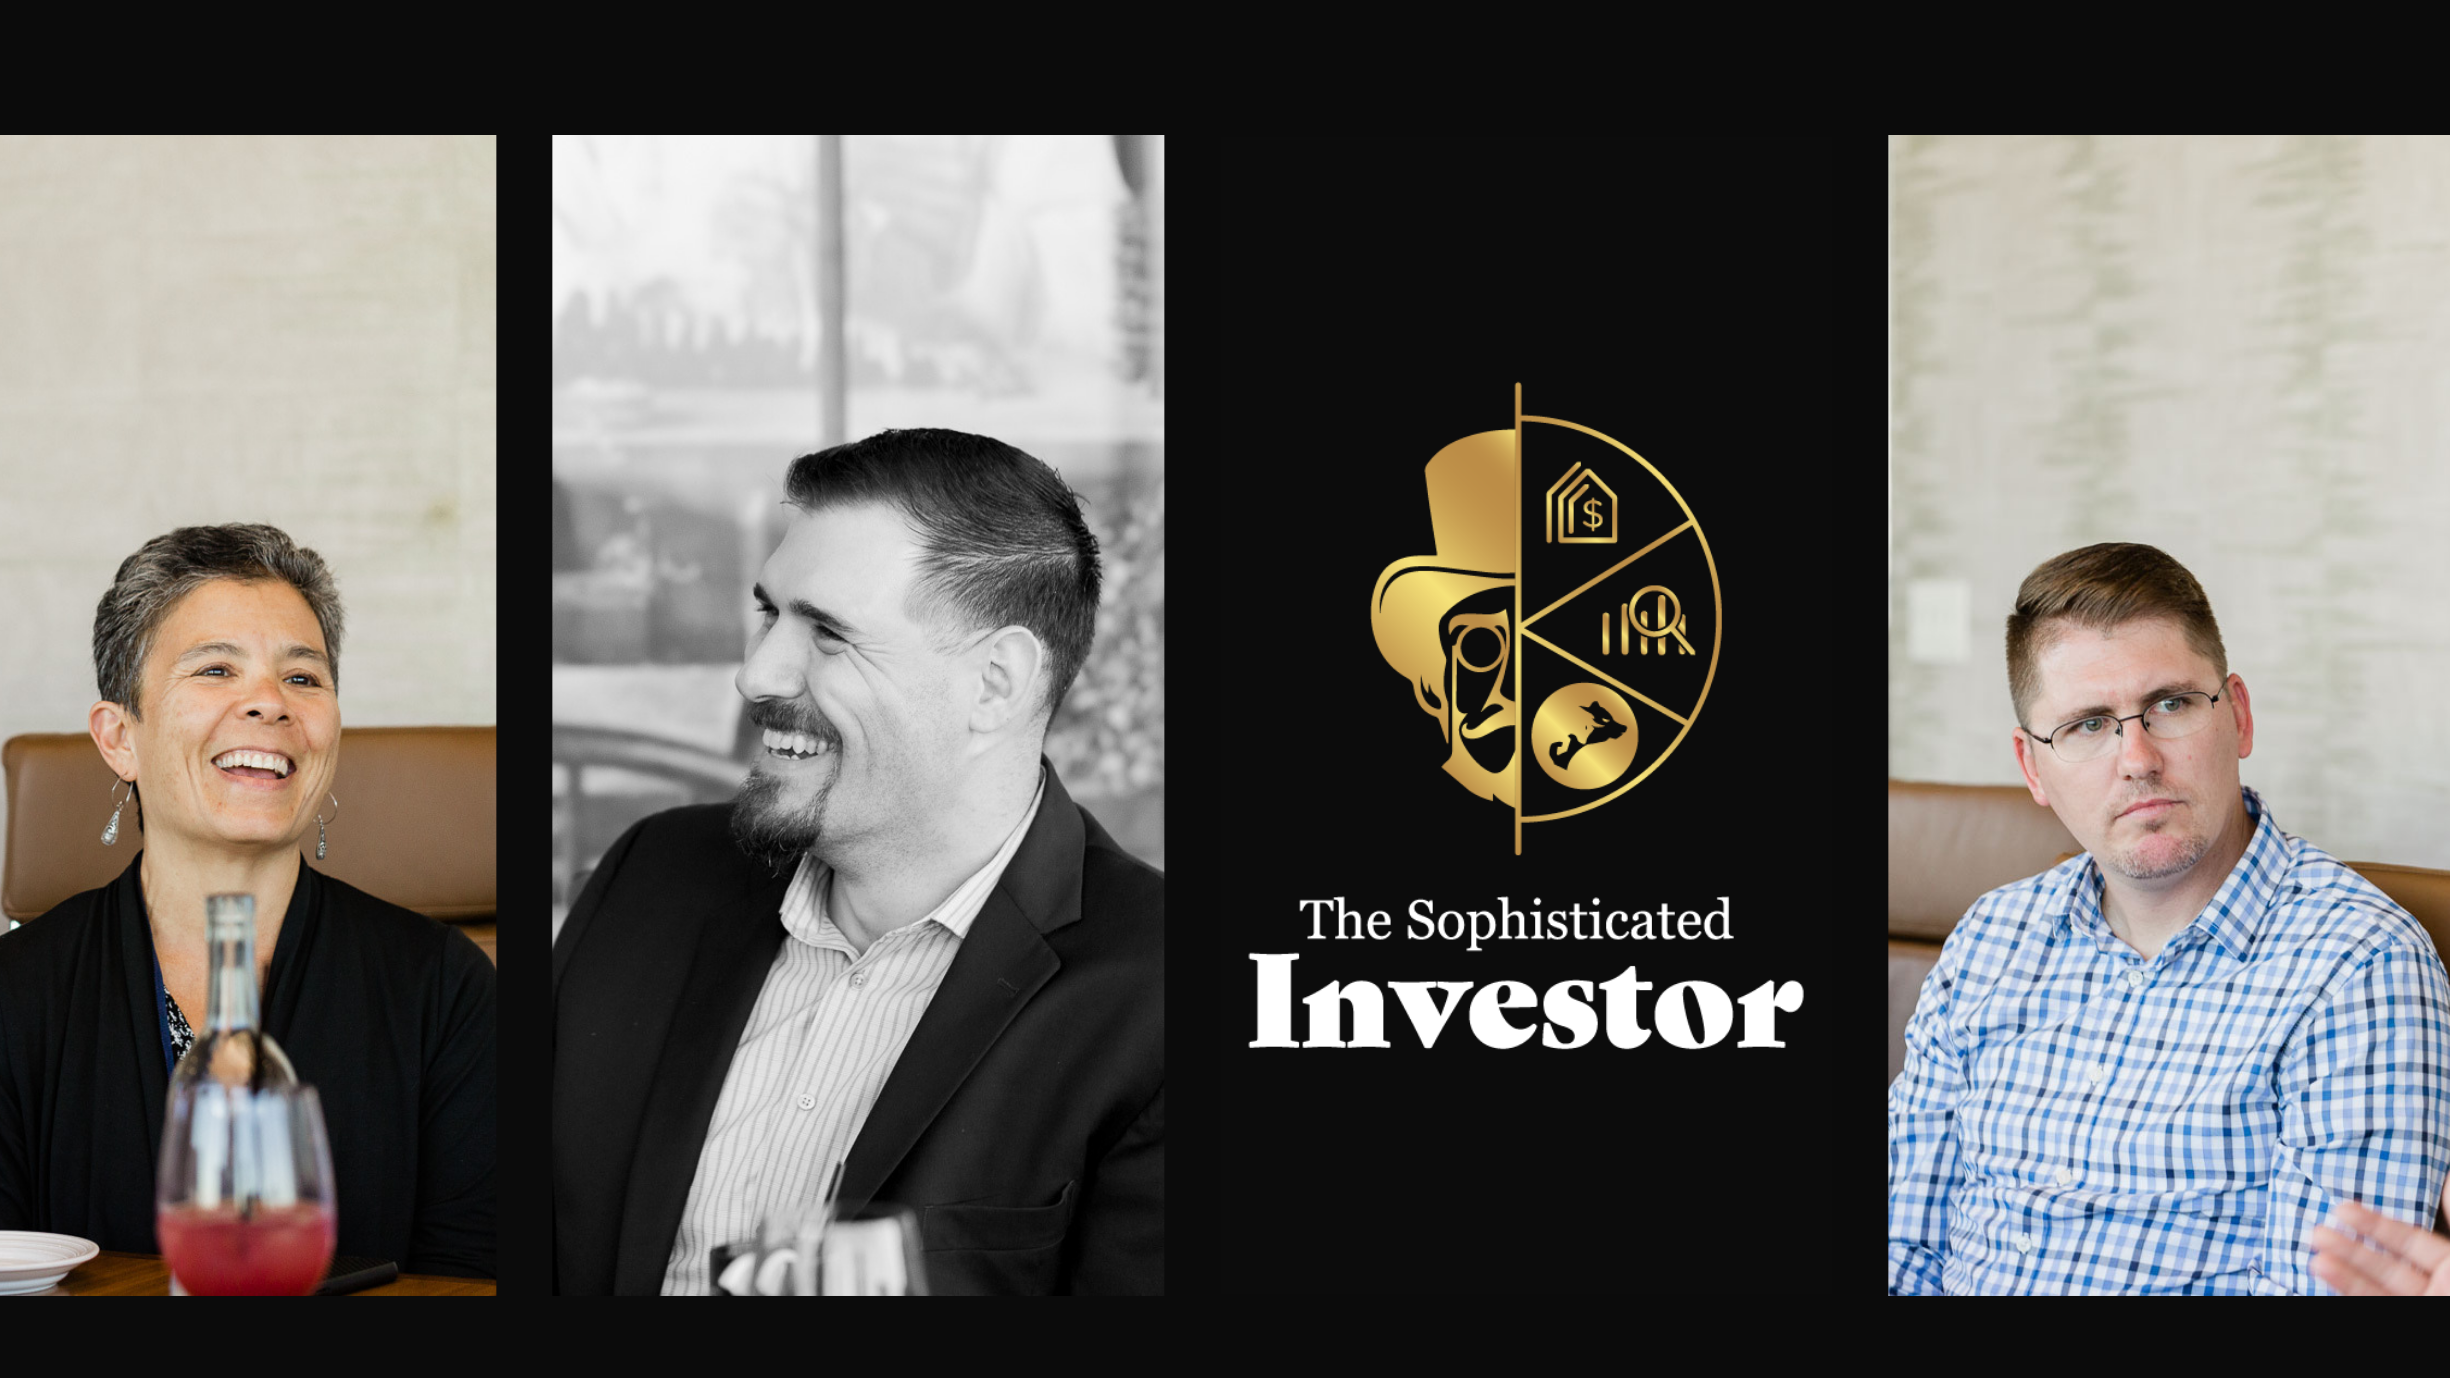 The Sophisticated Investors